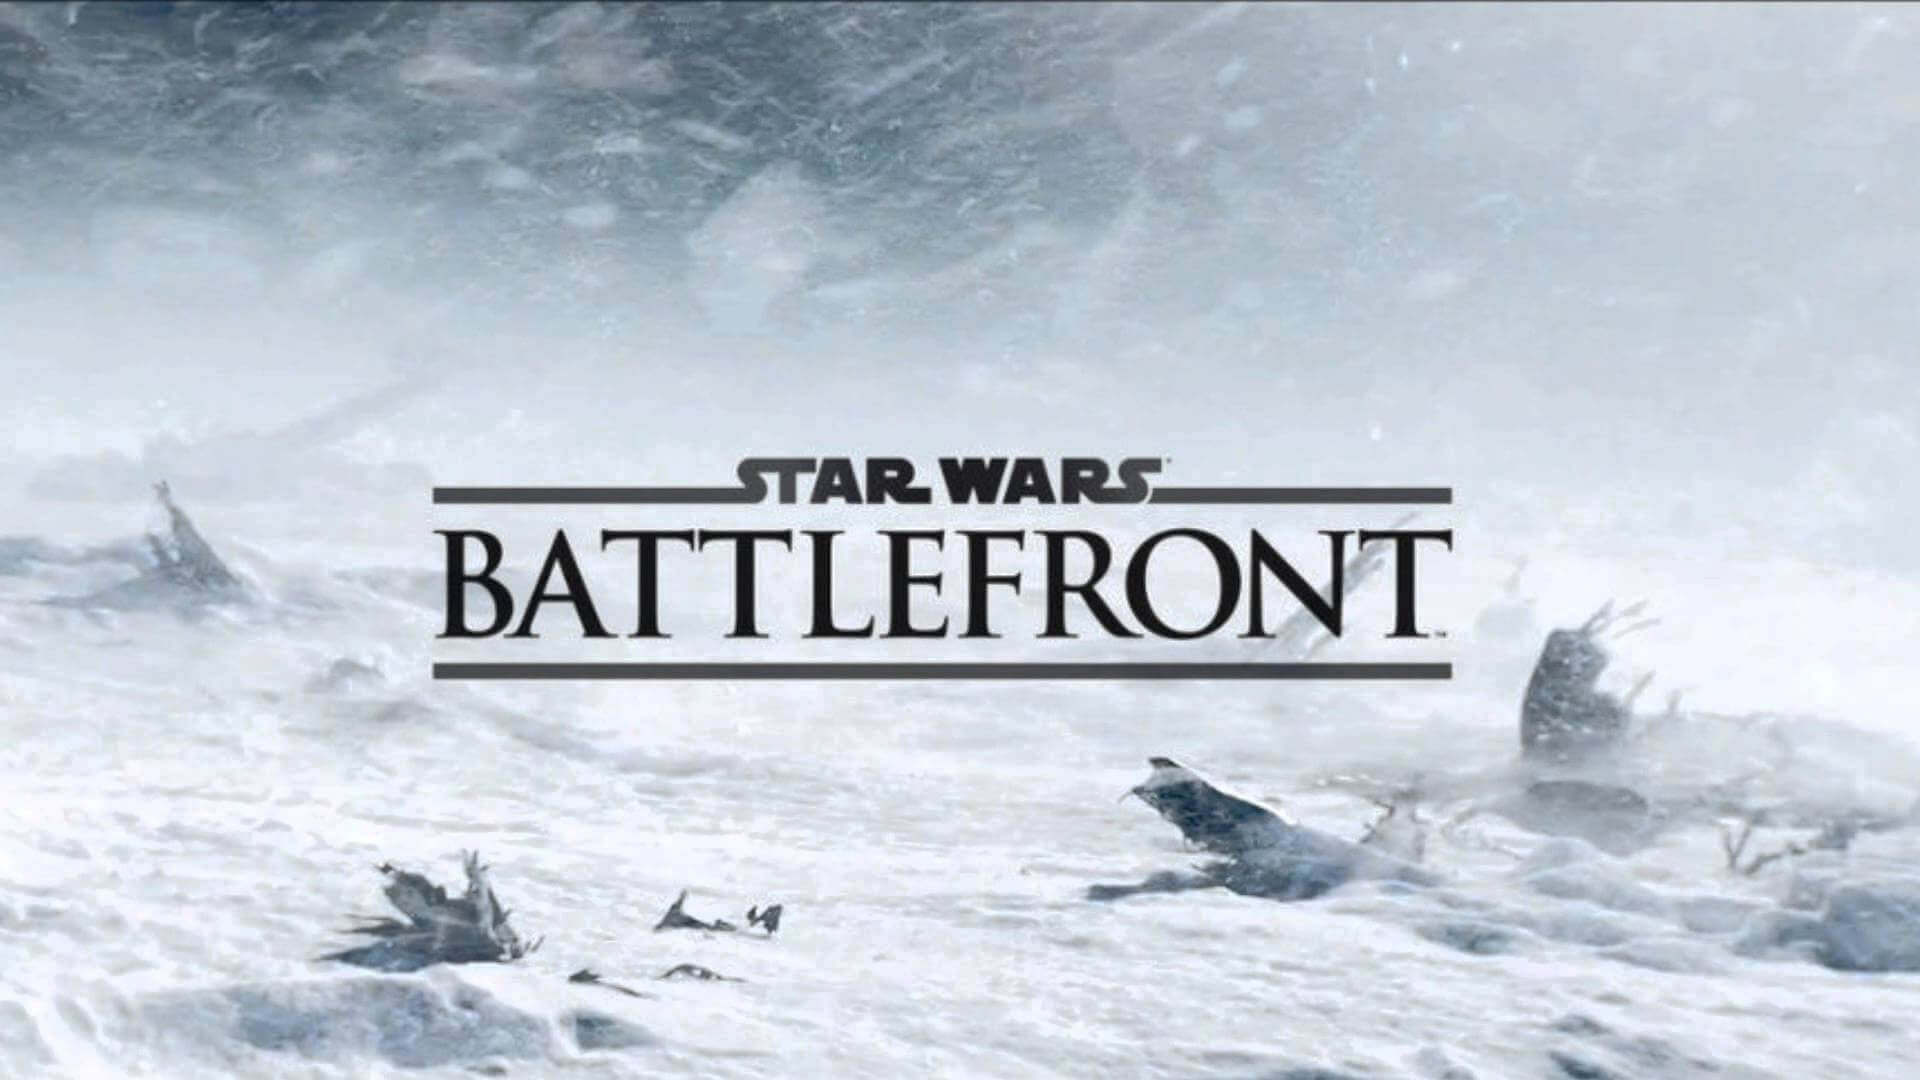 Star Wars: Battlefront to Debut Next Month